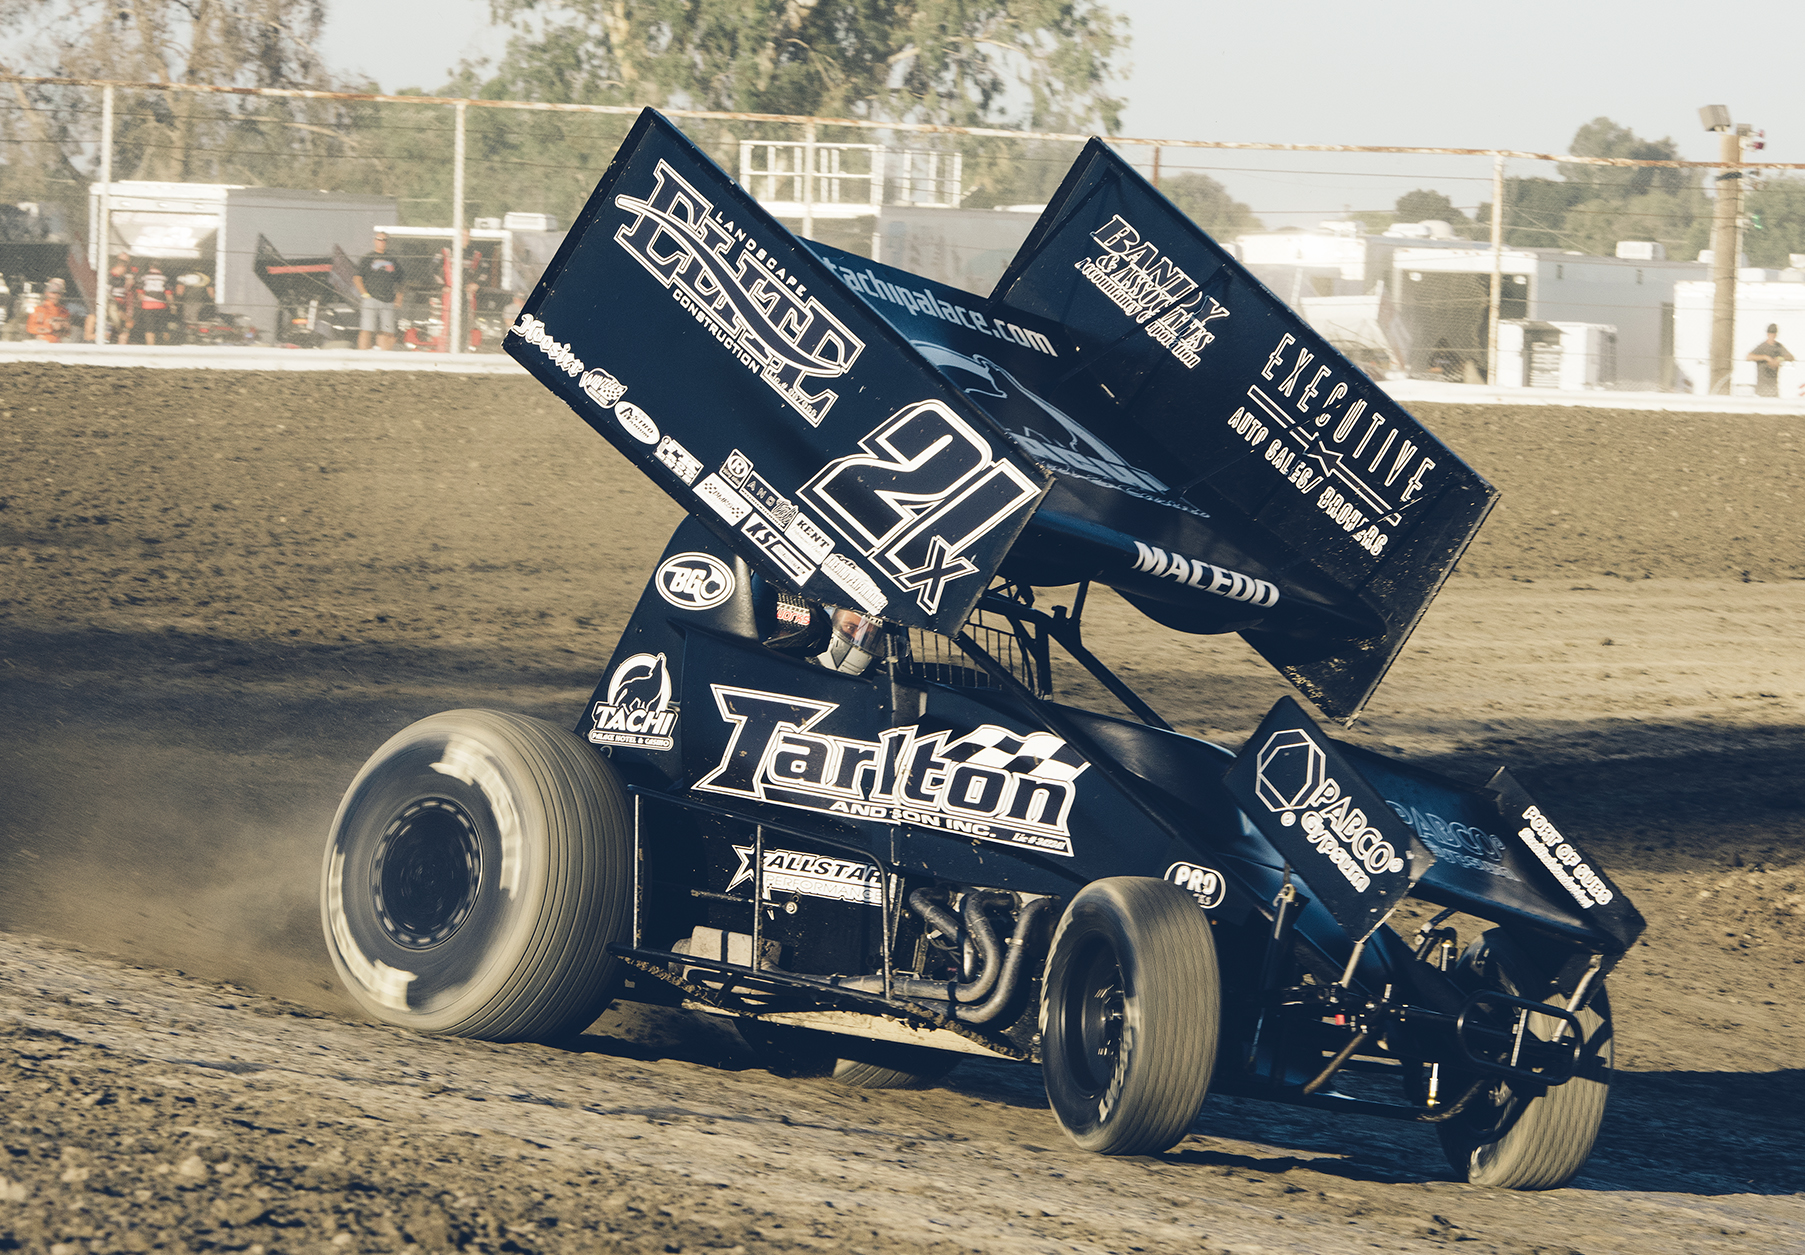 Driving the Tarlton 21x, here at Hanford, California, Macedo claimed the 2015 King of the West title for 410 sprint cars.